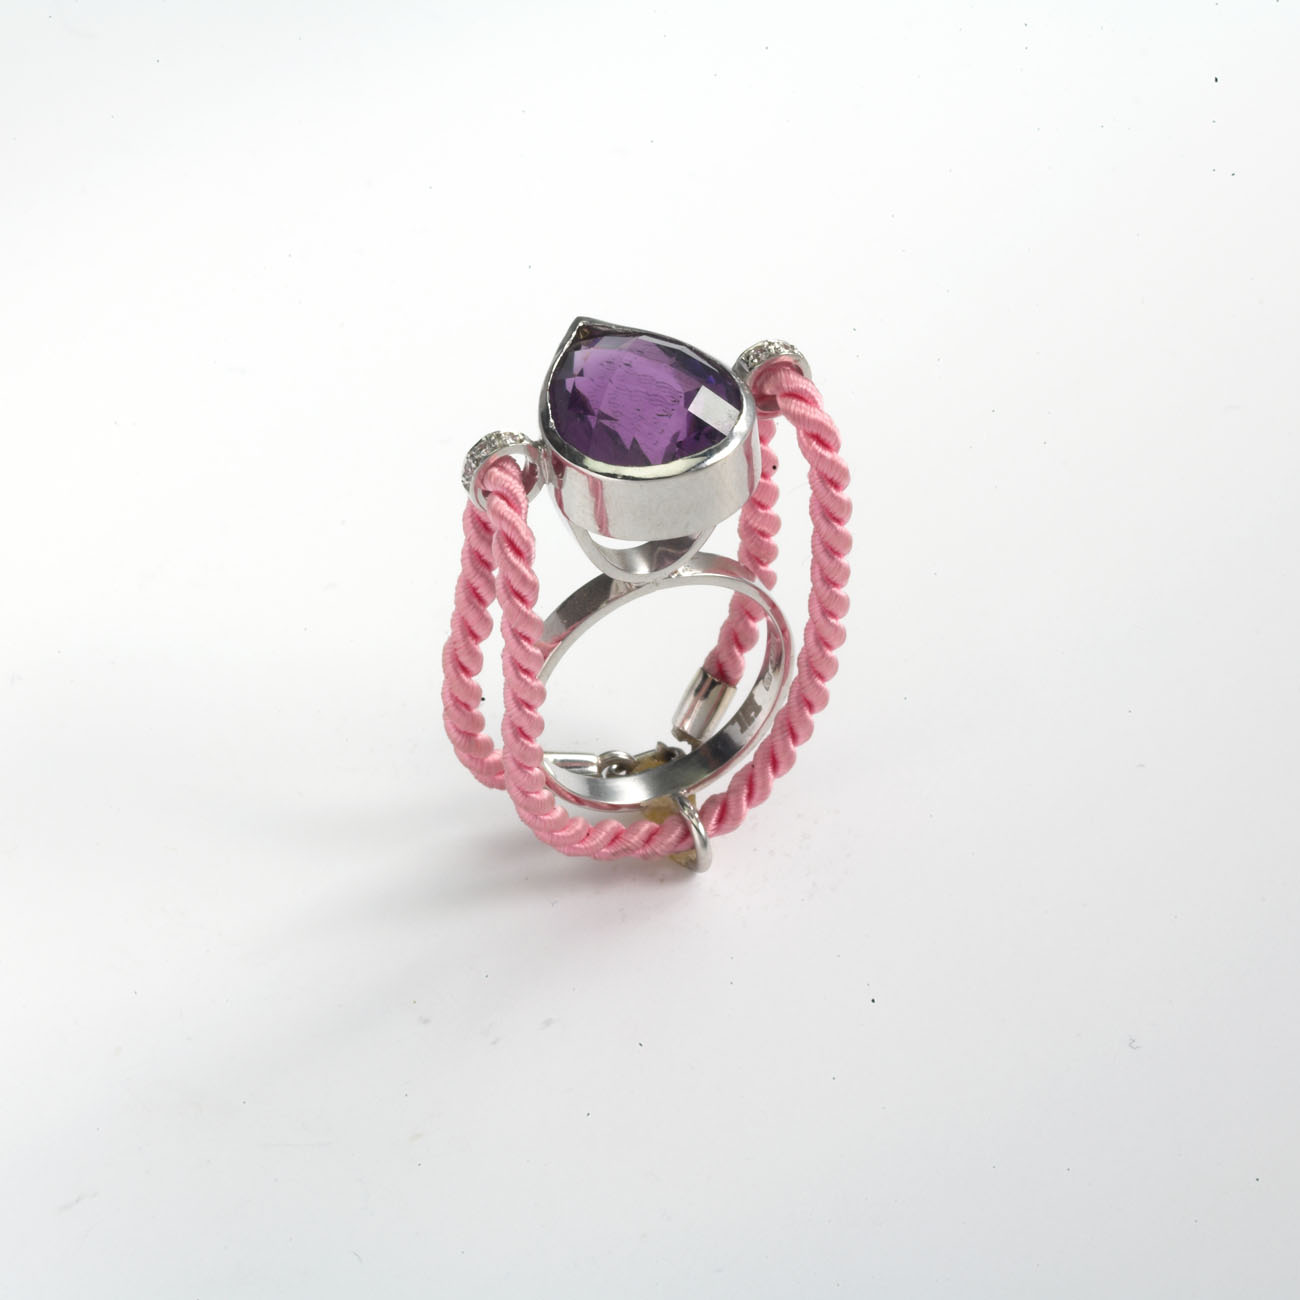 Ring in 18kt white gold with with pink silk cord interchangeable, brilliant diamonds and an amethyst